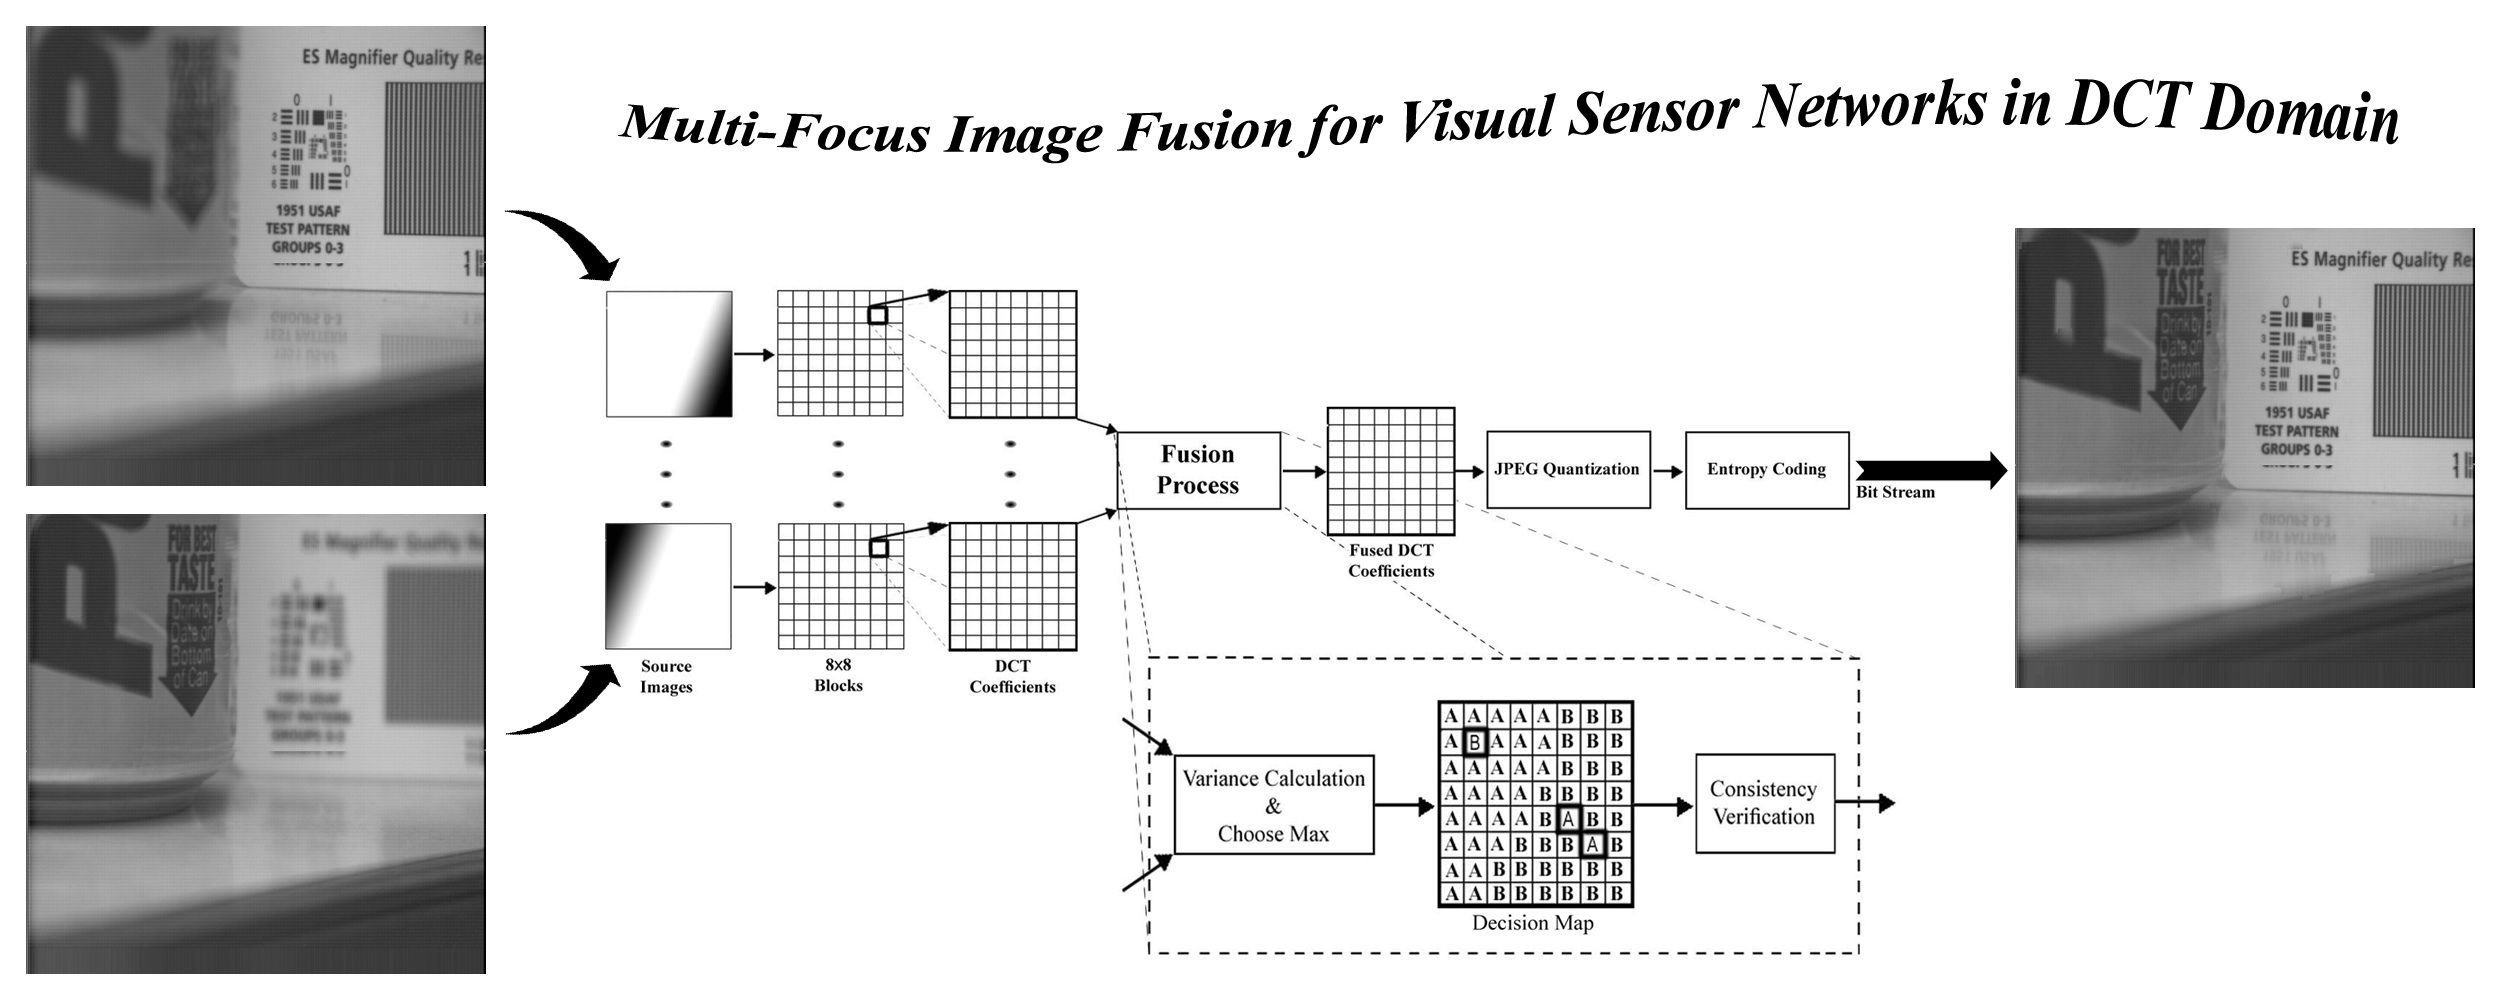 Multi-Focus Image Fusion in DCT Domain - File Exchange